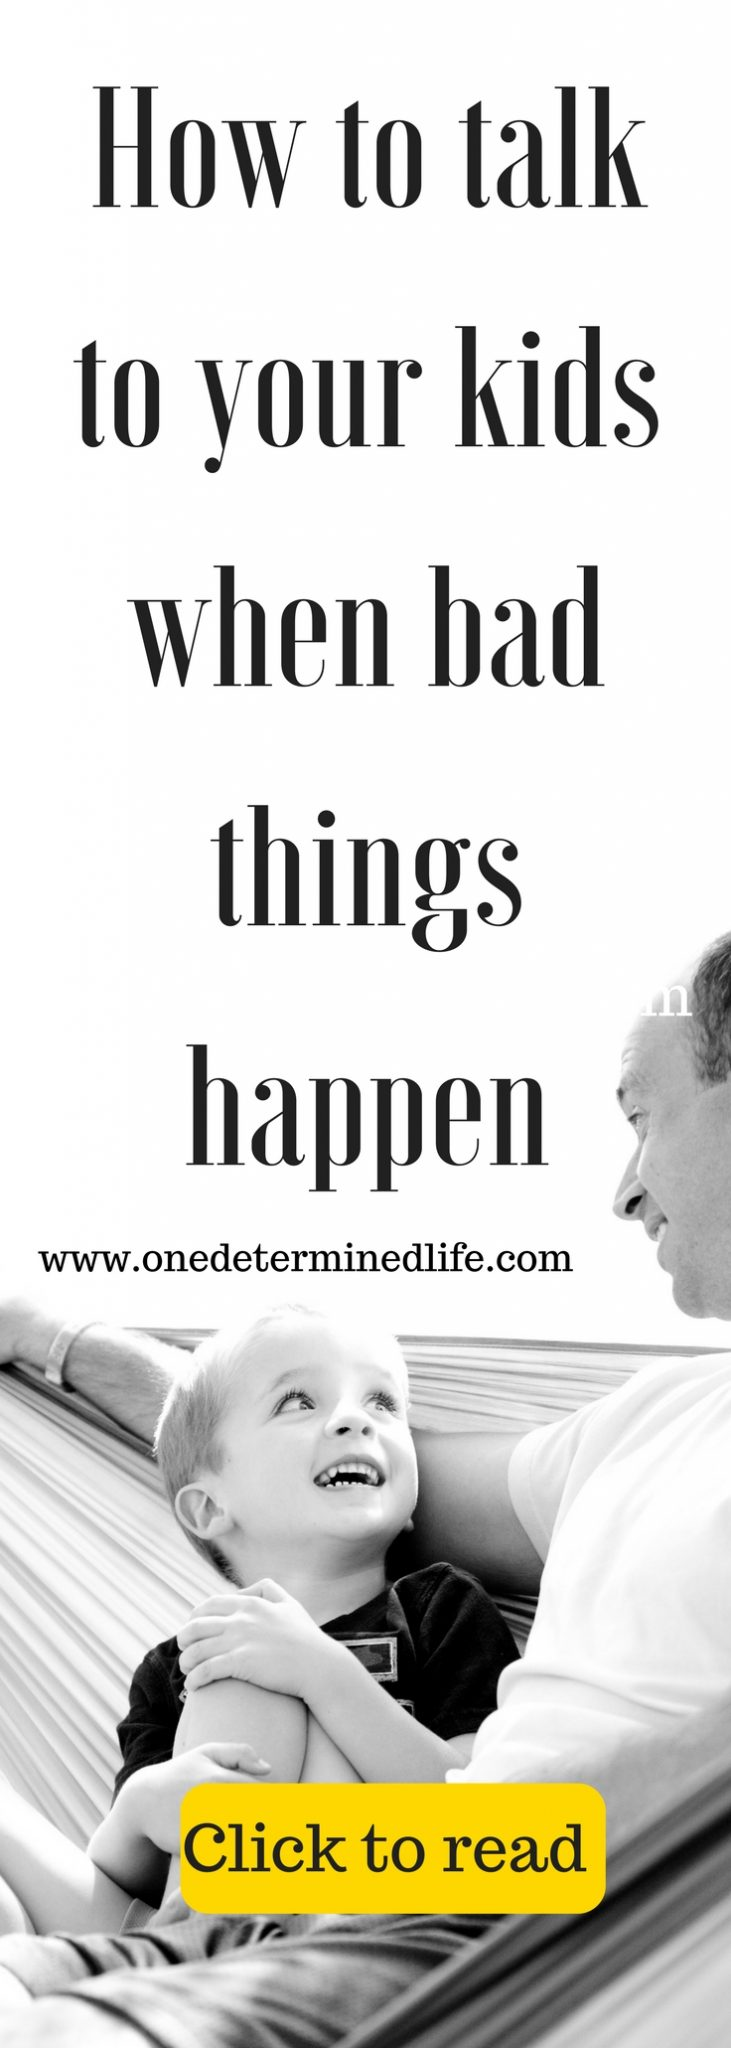 how to talk to your kids when bad things happen, #parentingtips, #christianparenting